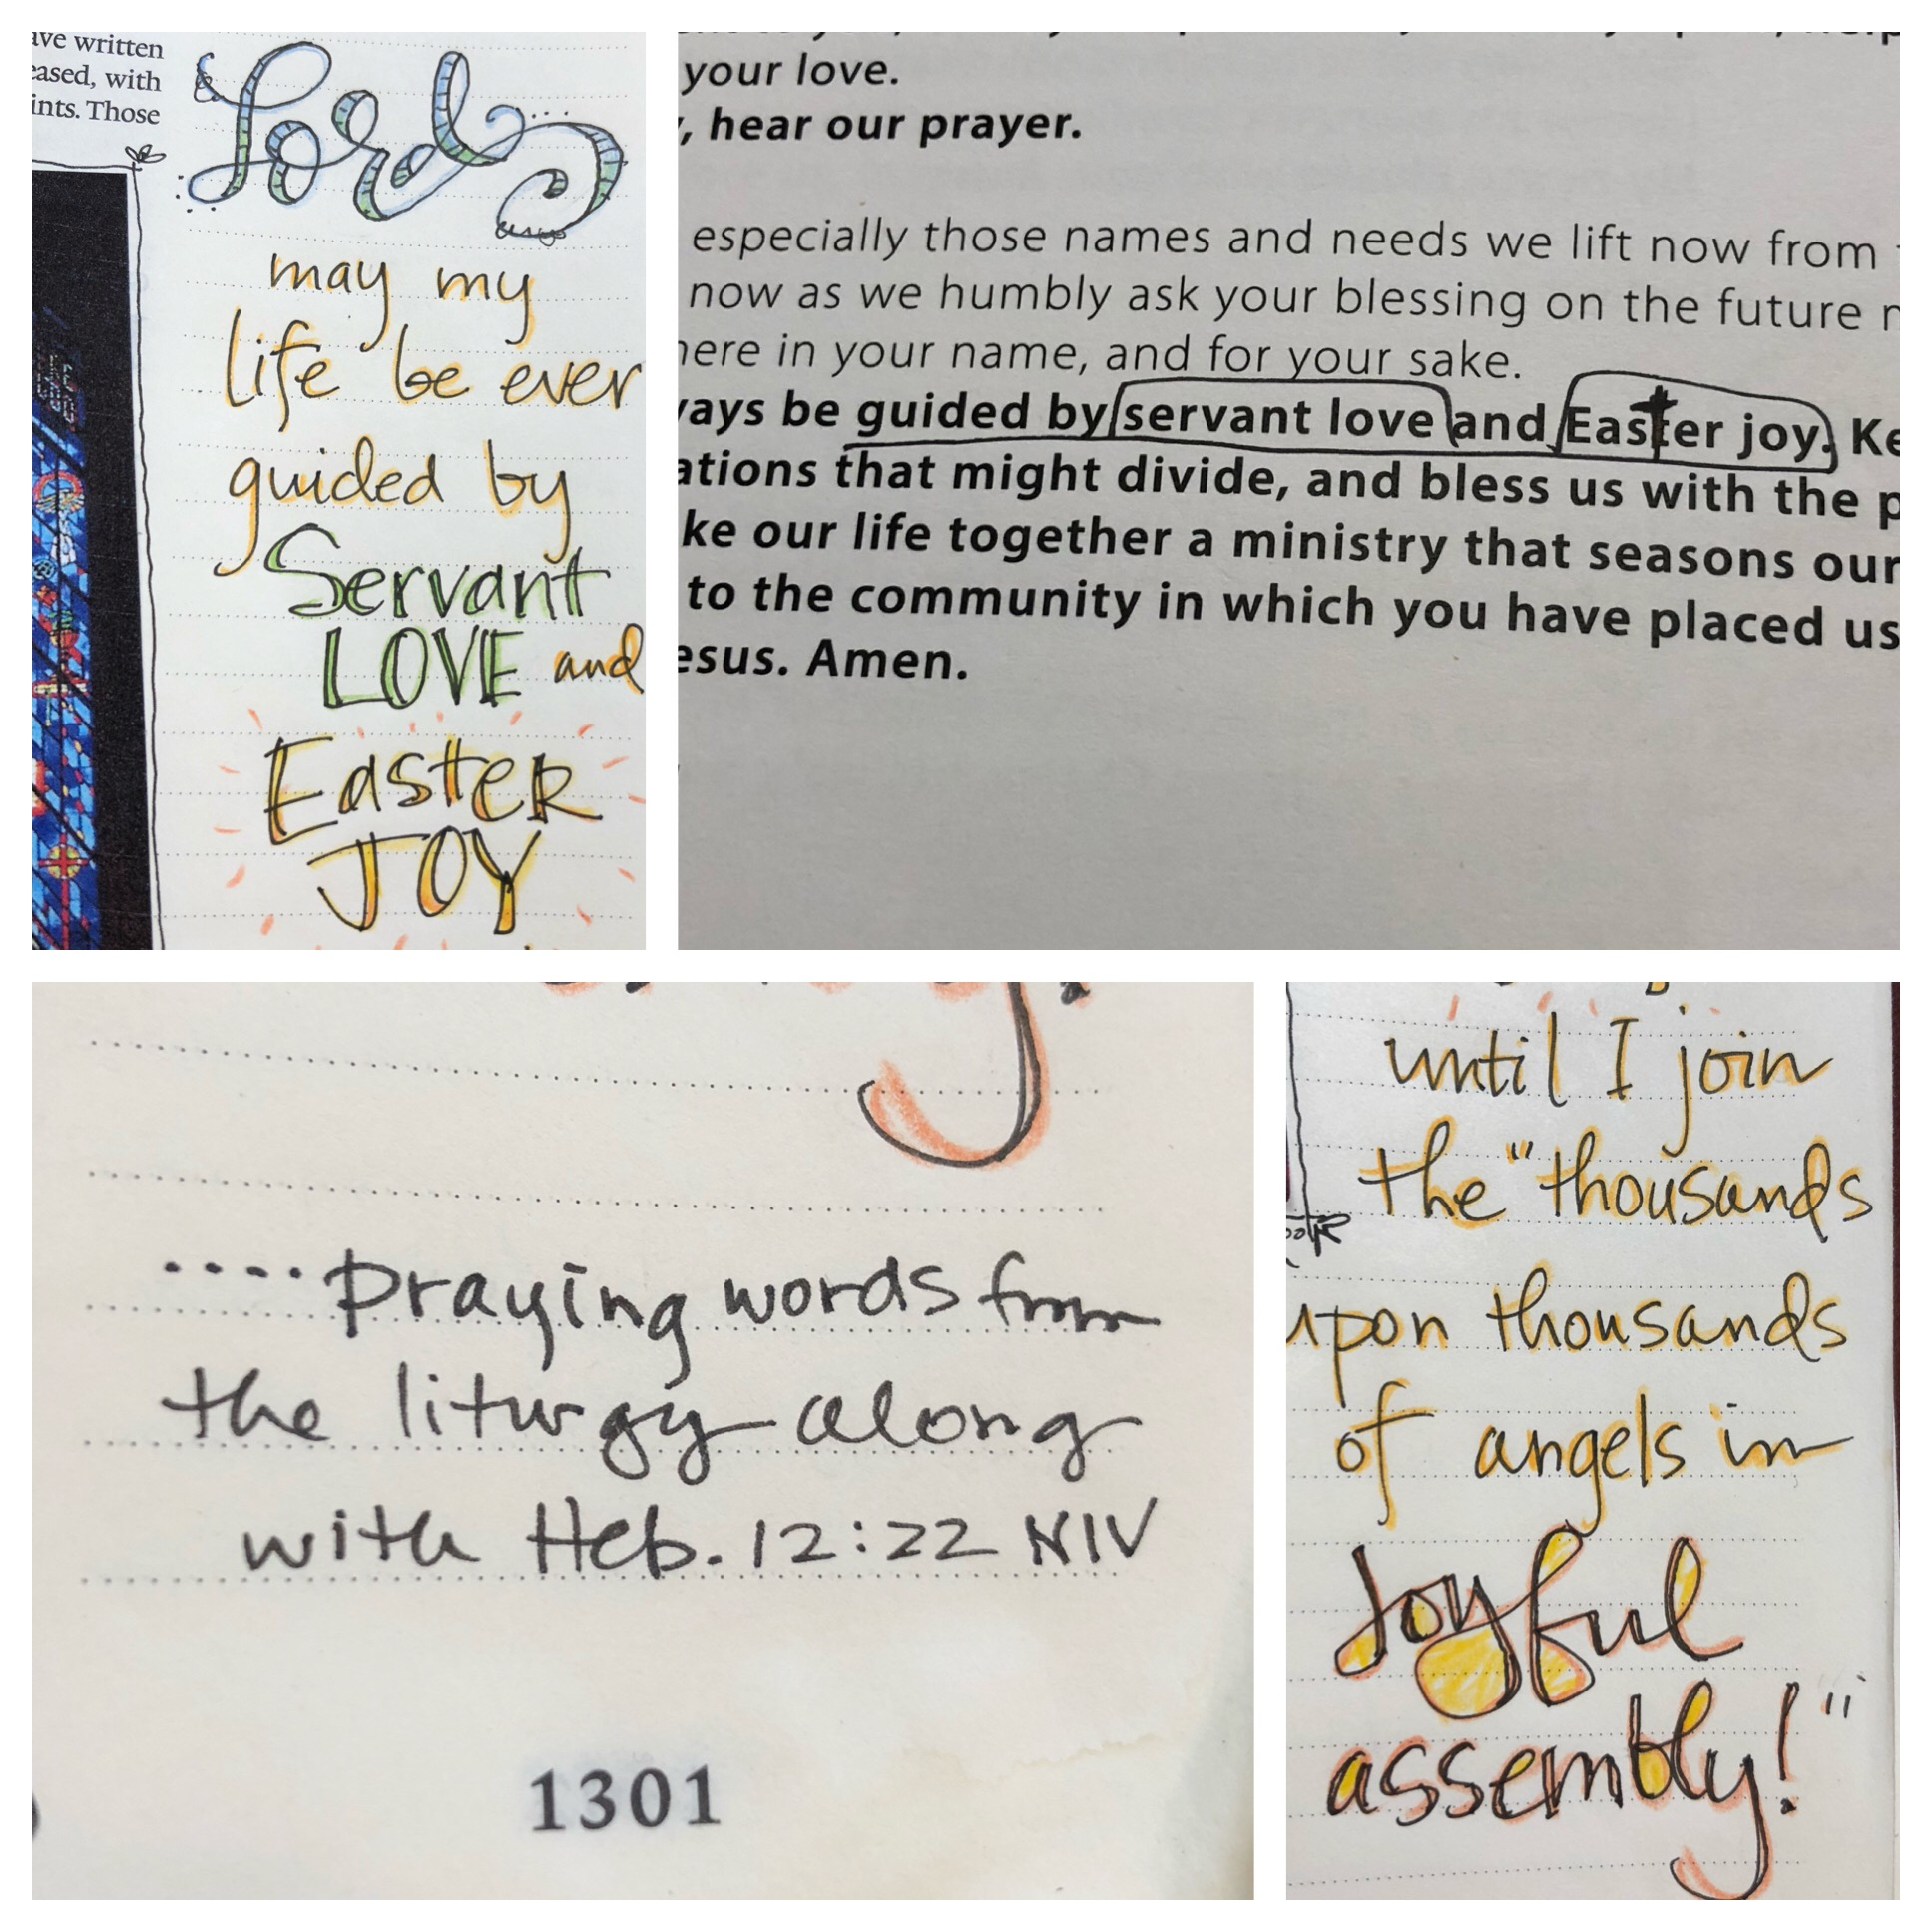 Thought-provoking words circled during a prayer within the liturgy were joined with God's Word from the theme verse in Hebrews 12:22 to create a prayer in the margin.